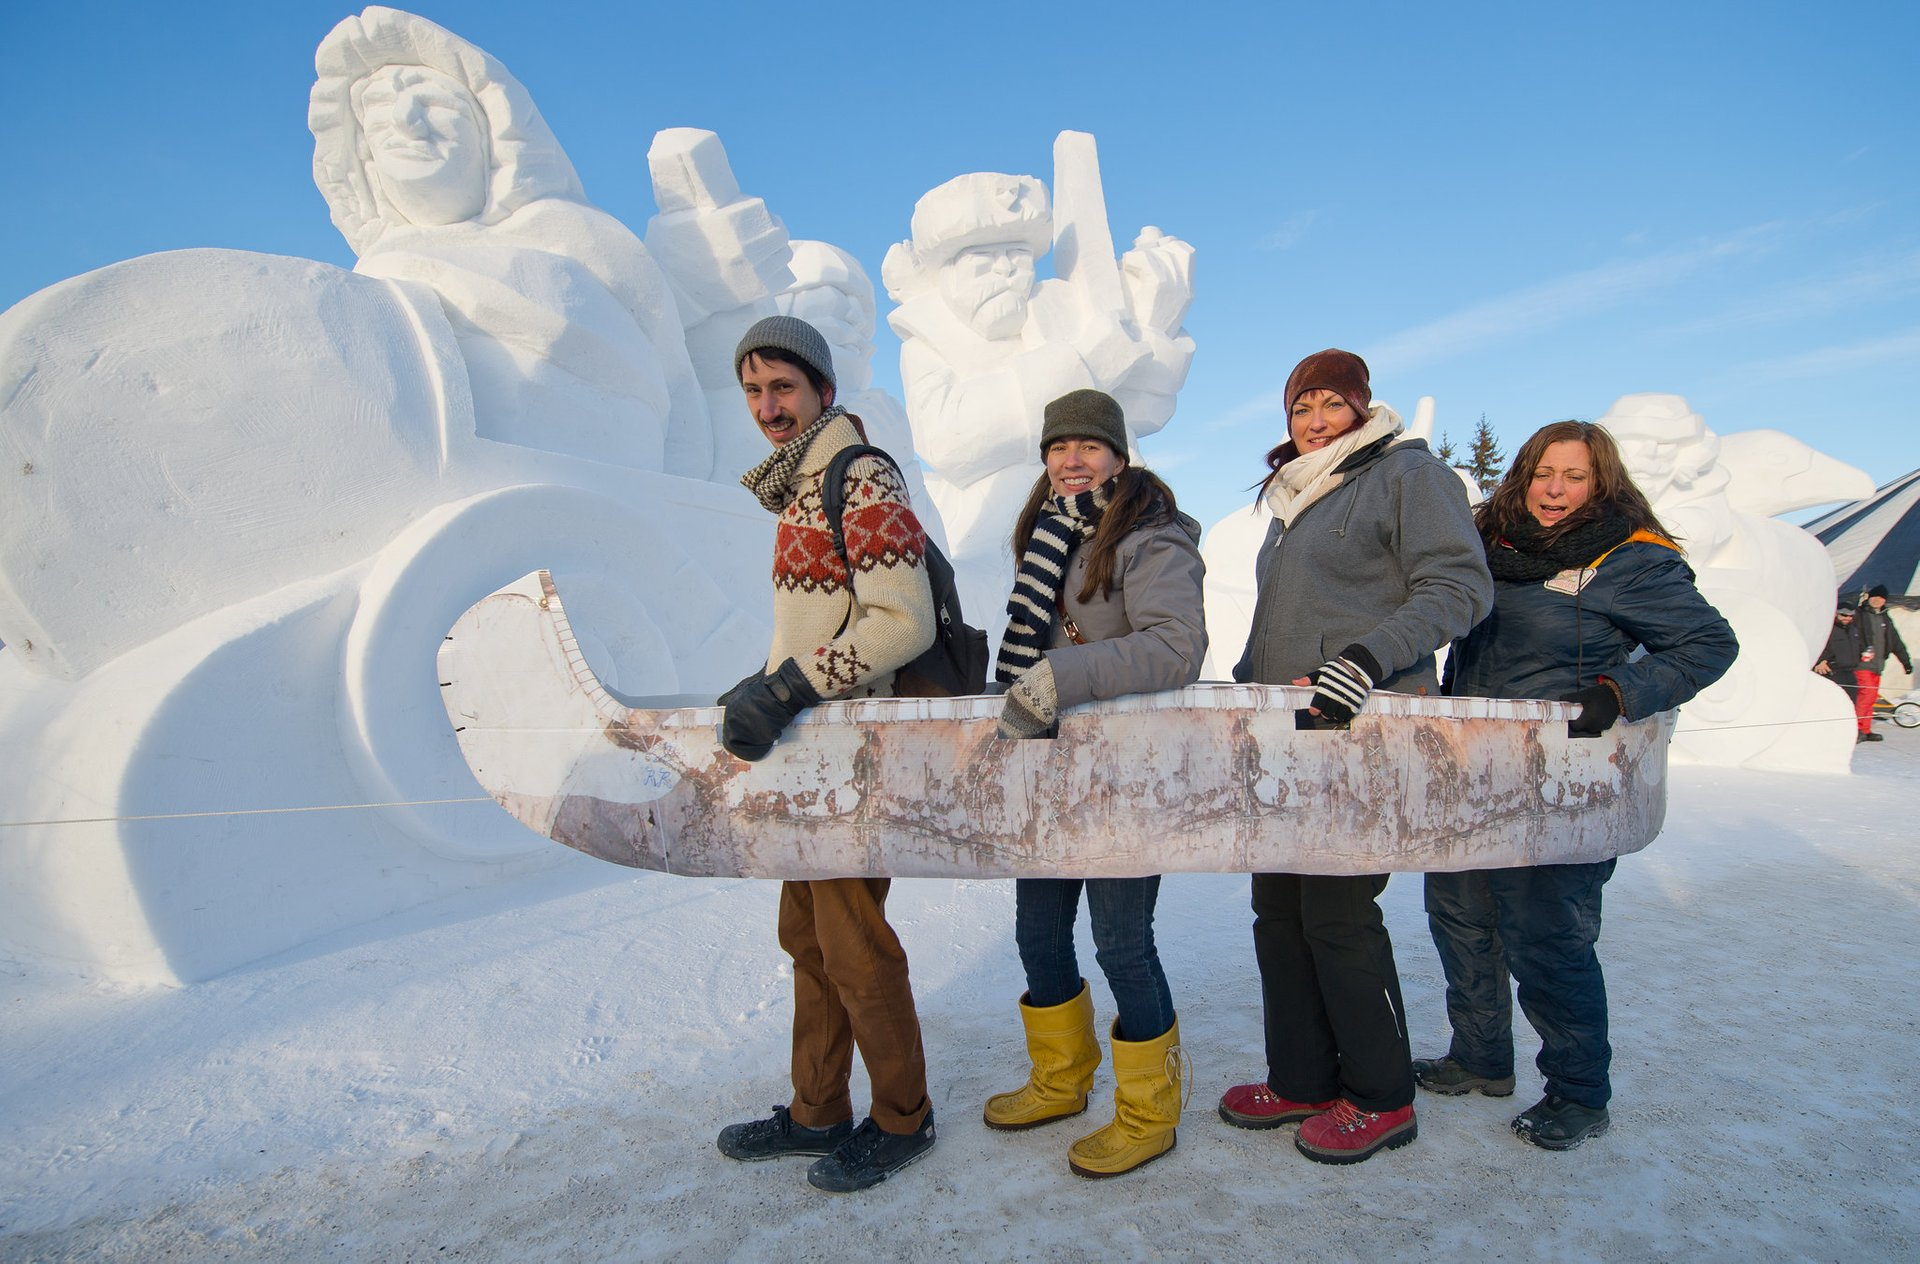 Festival du Voyageur in Winnipeg 2020 - Best Time